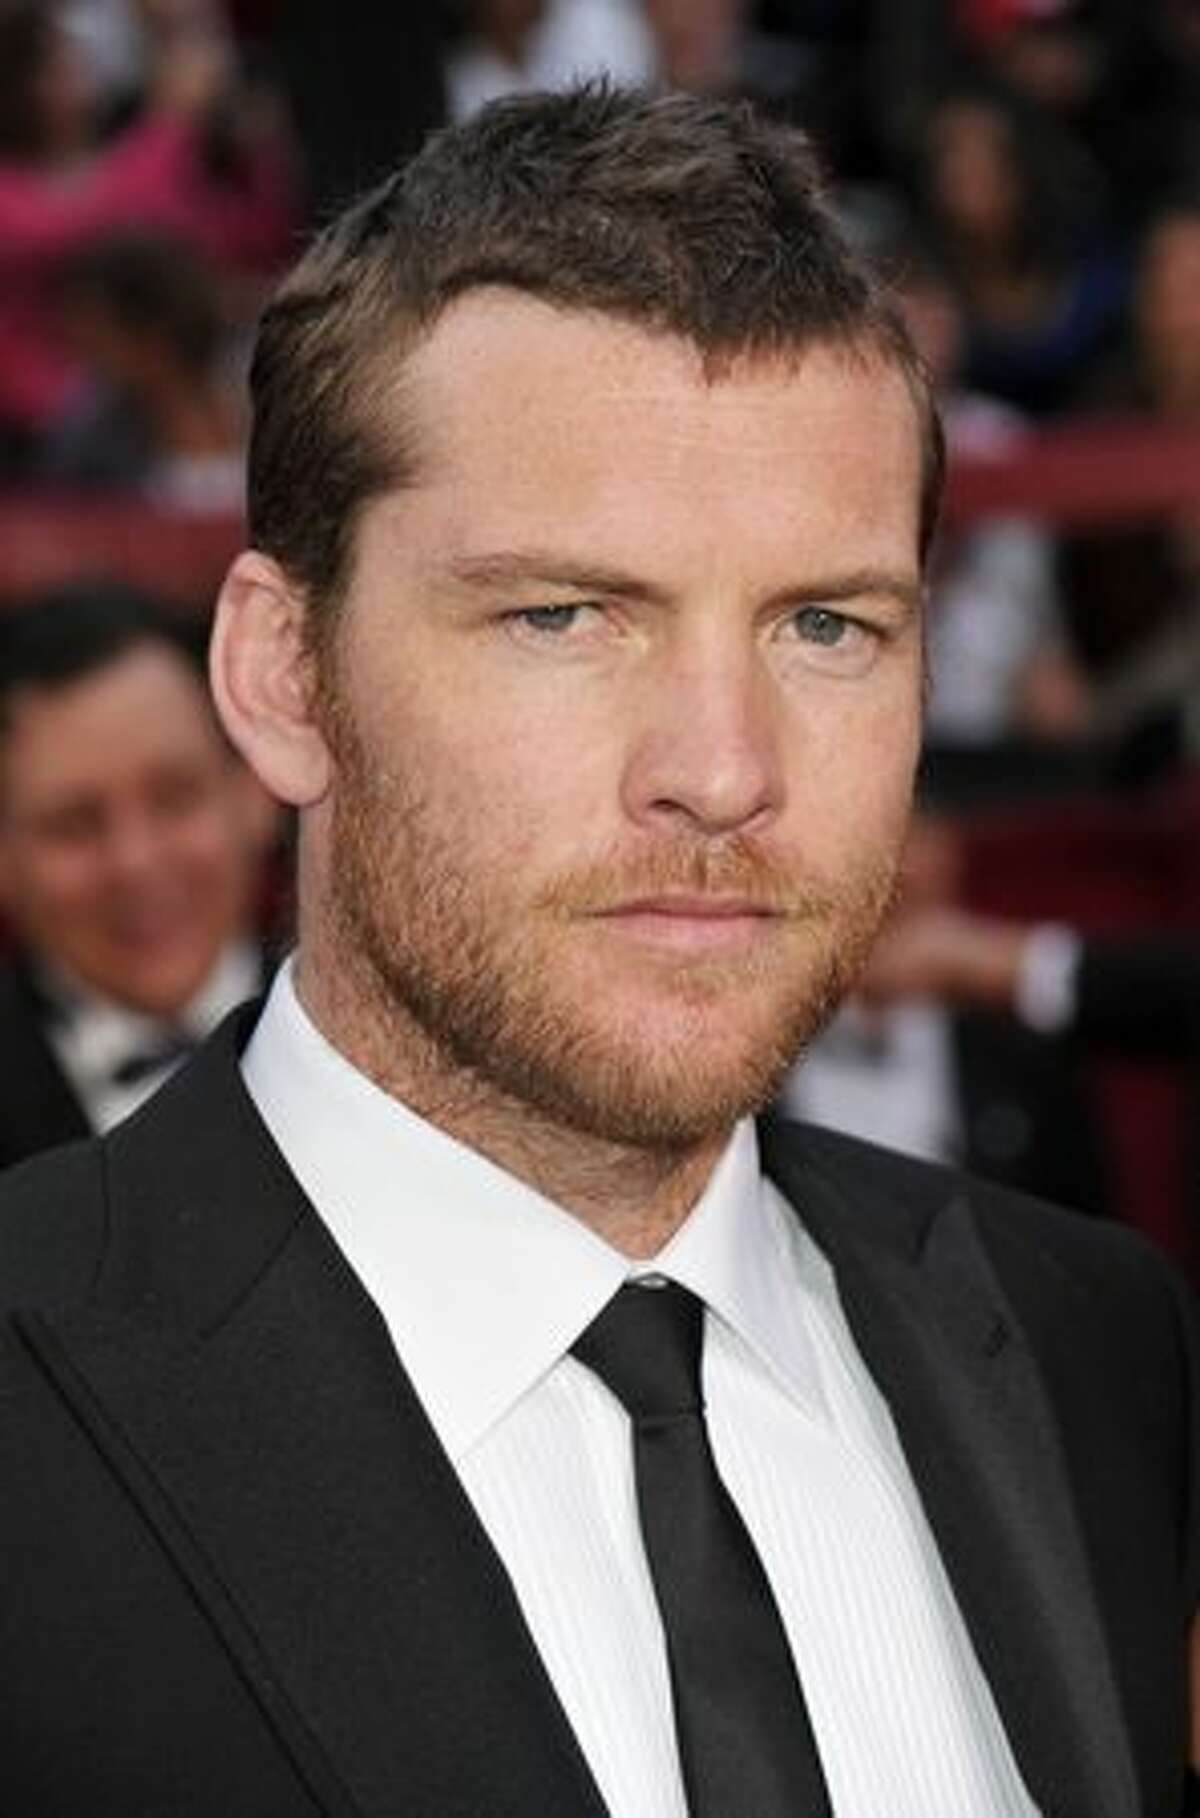 Actor Sam Worthington arrives at the 82nd Annual Academy Awards held at Kodak Theatre in Hollywood, California.